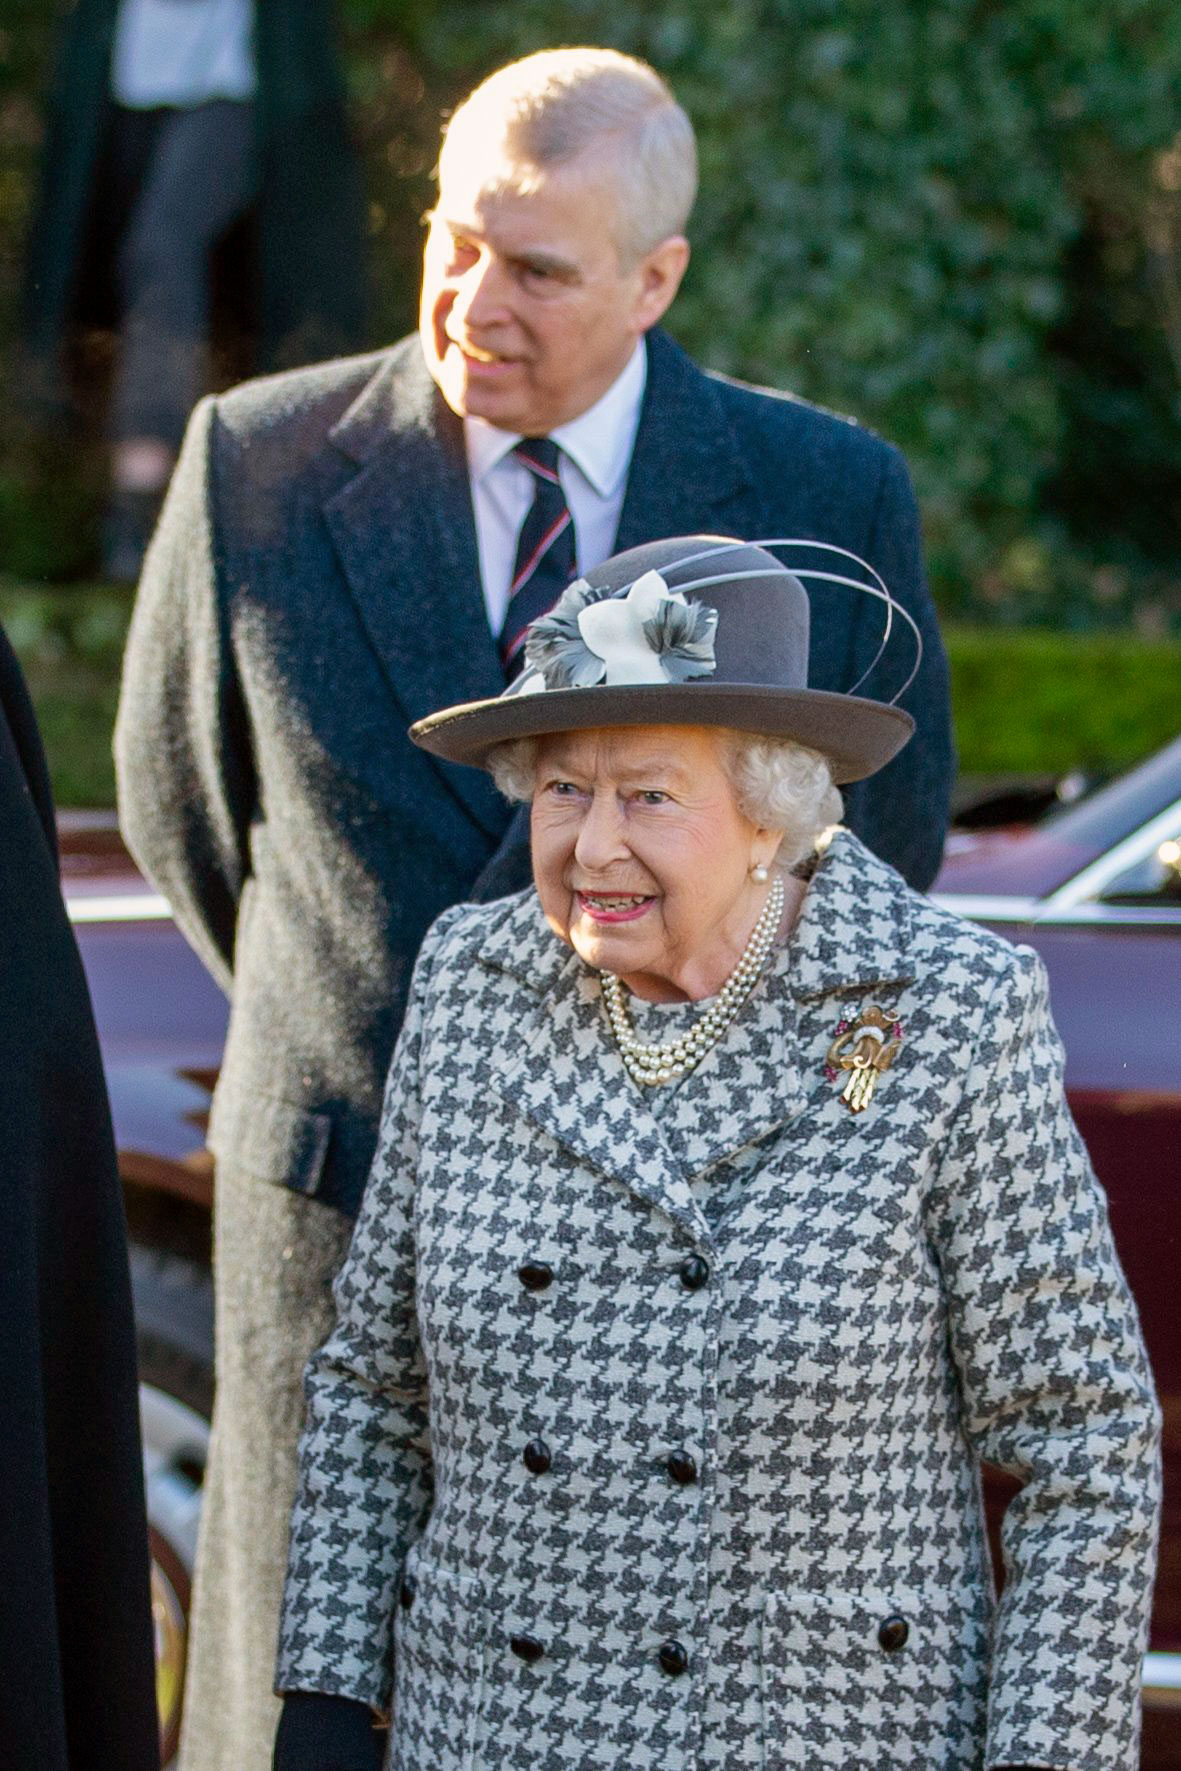 Queen Attends 1st Sunday Service Since Harry, Meghan's Royal Exit